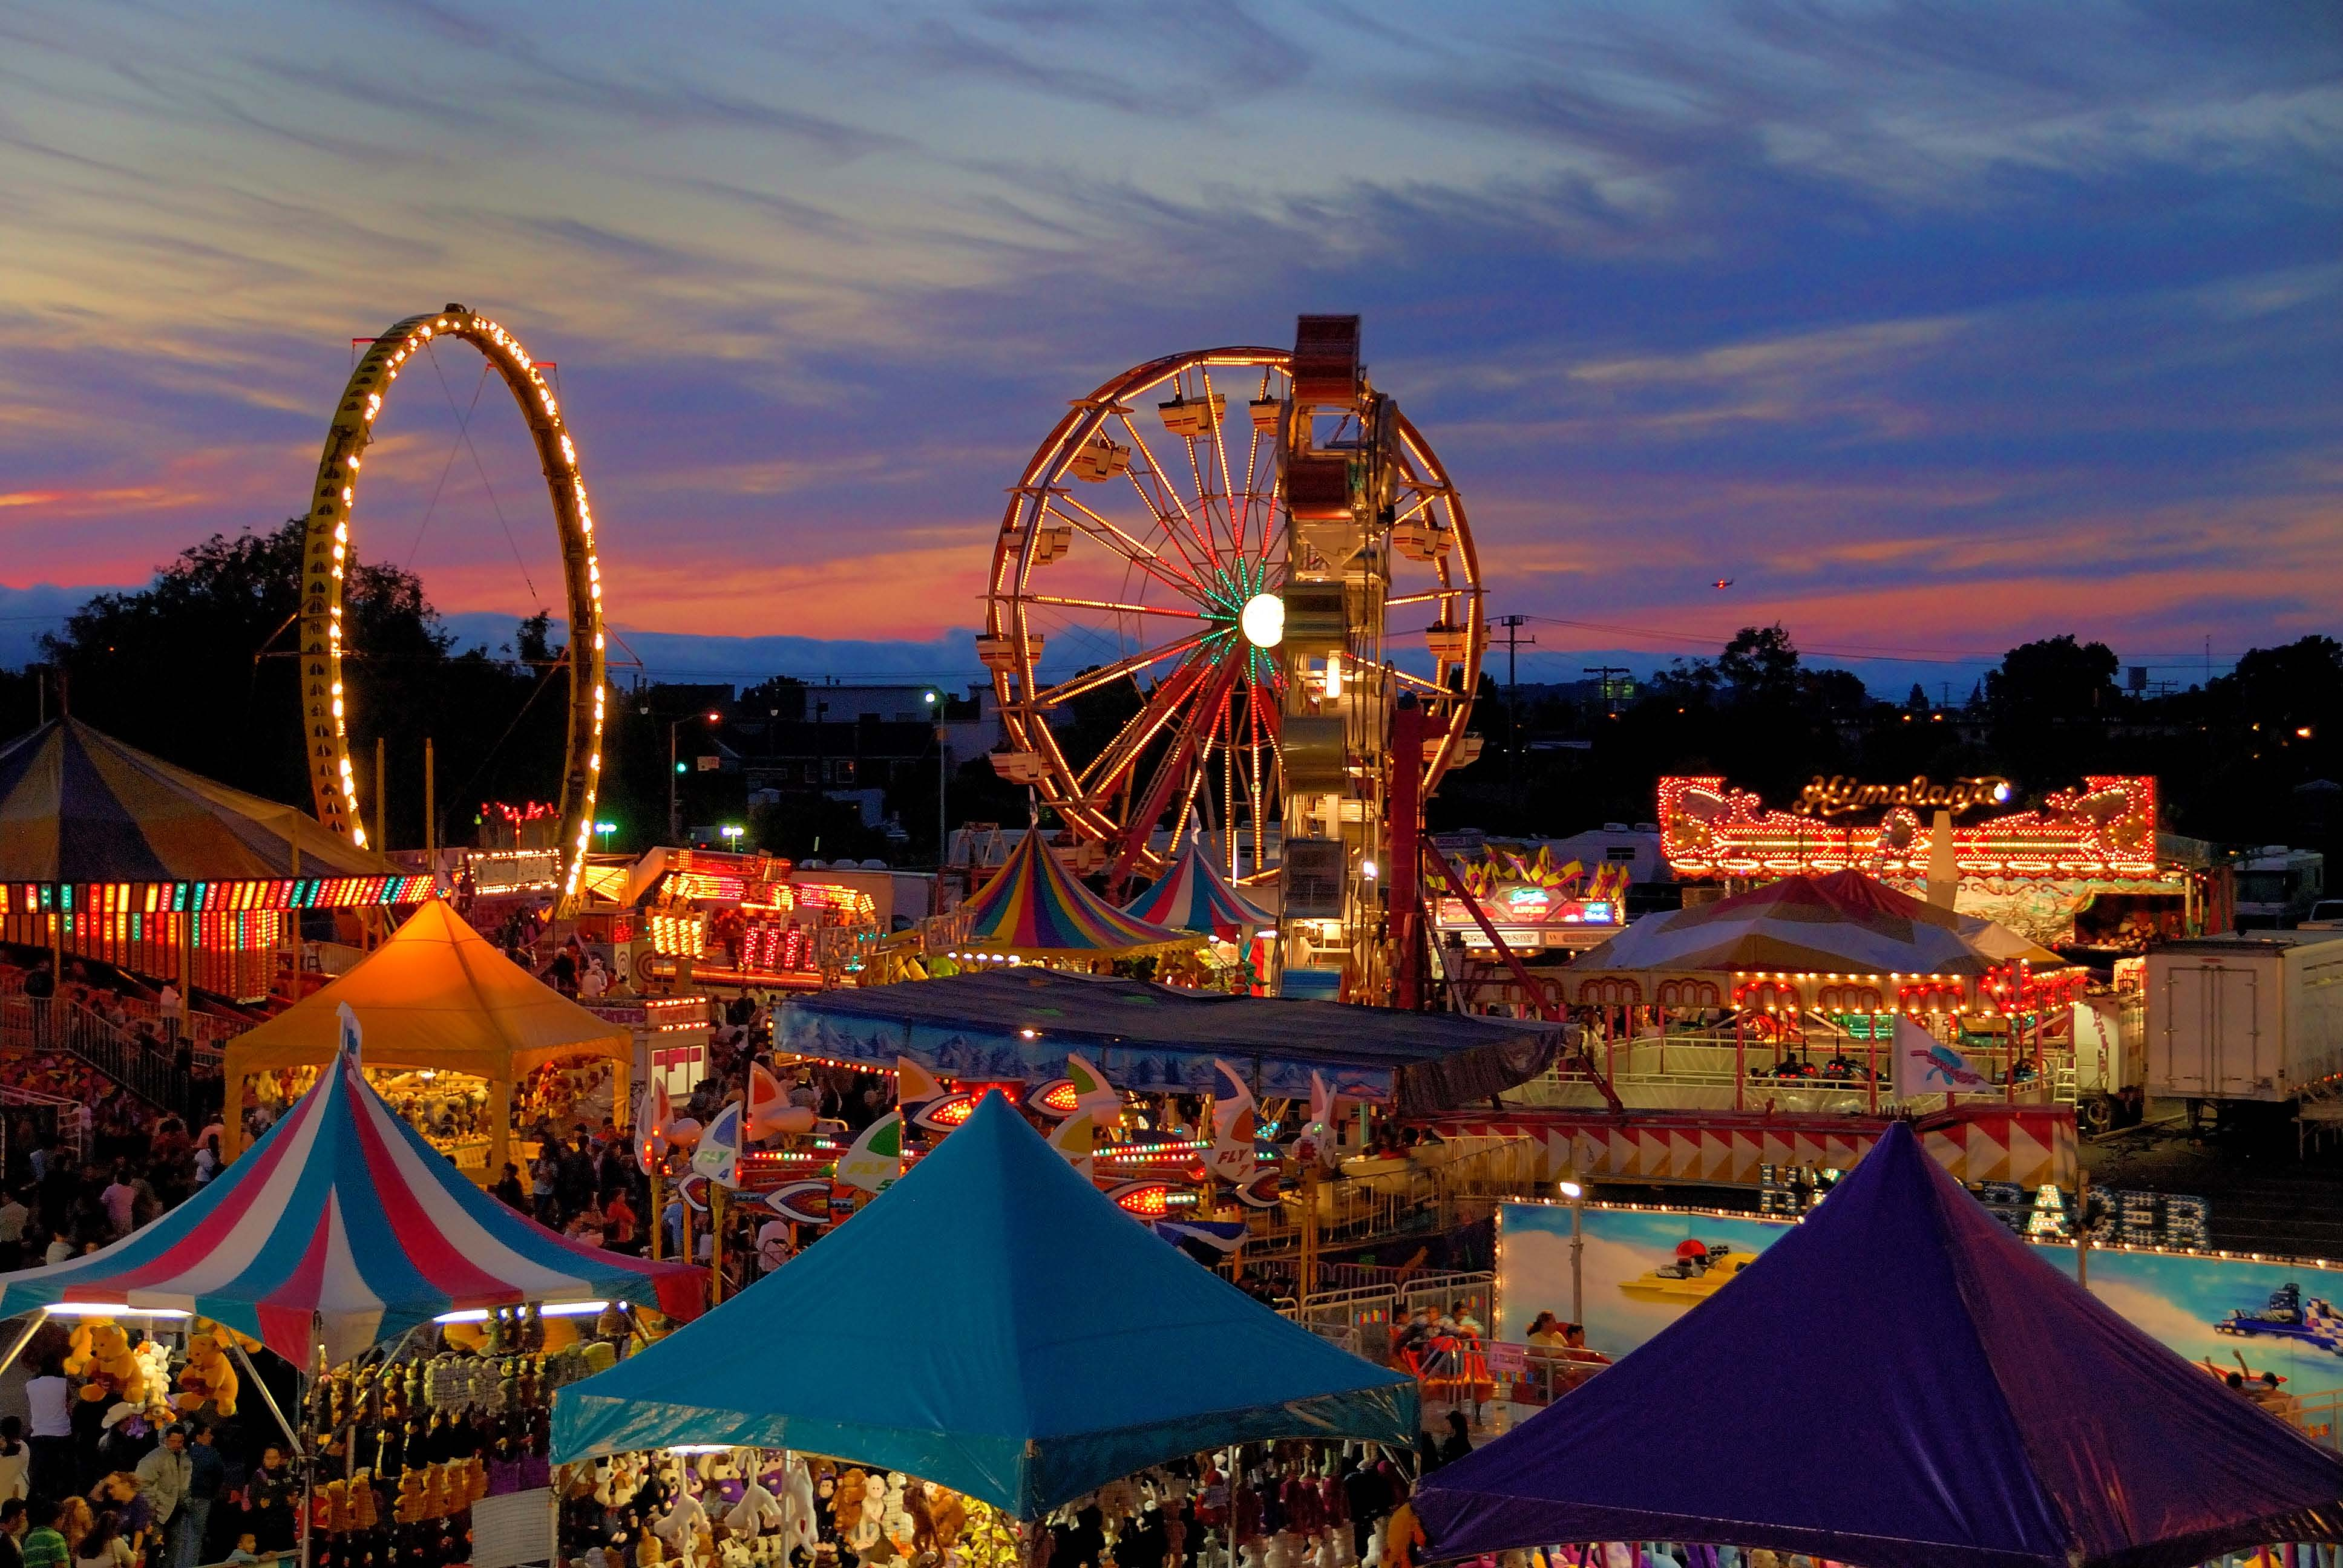 Carnival Fair by Night